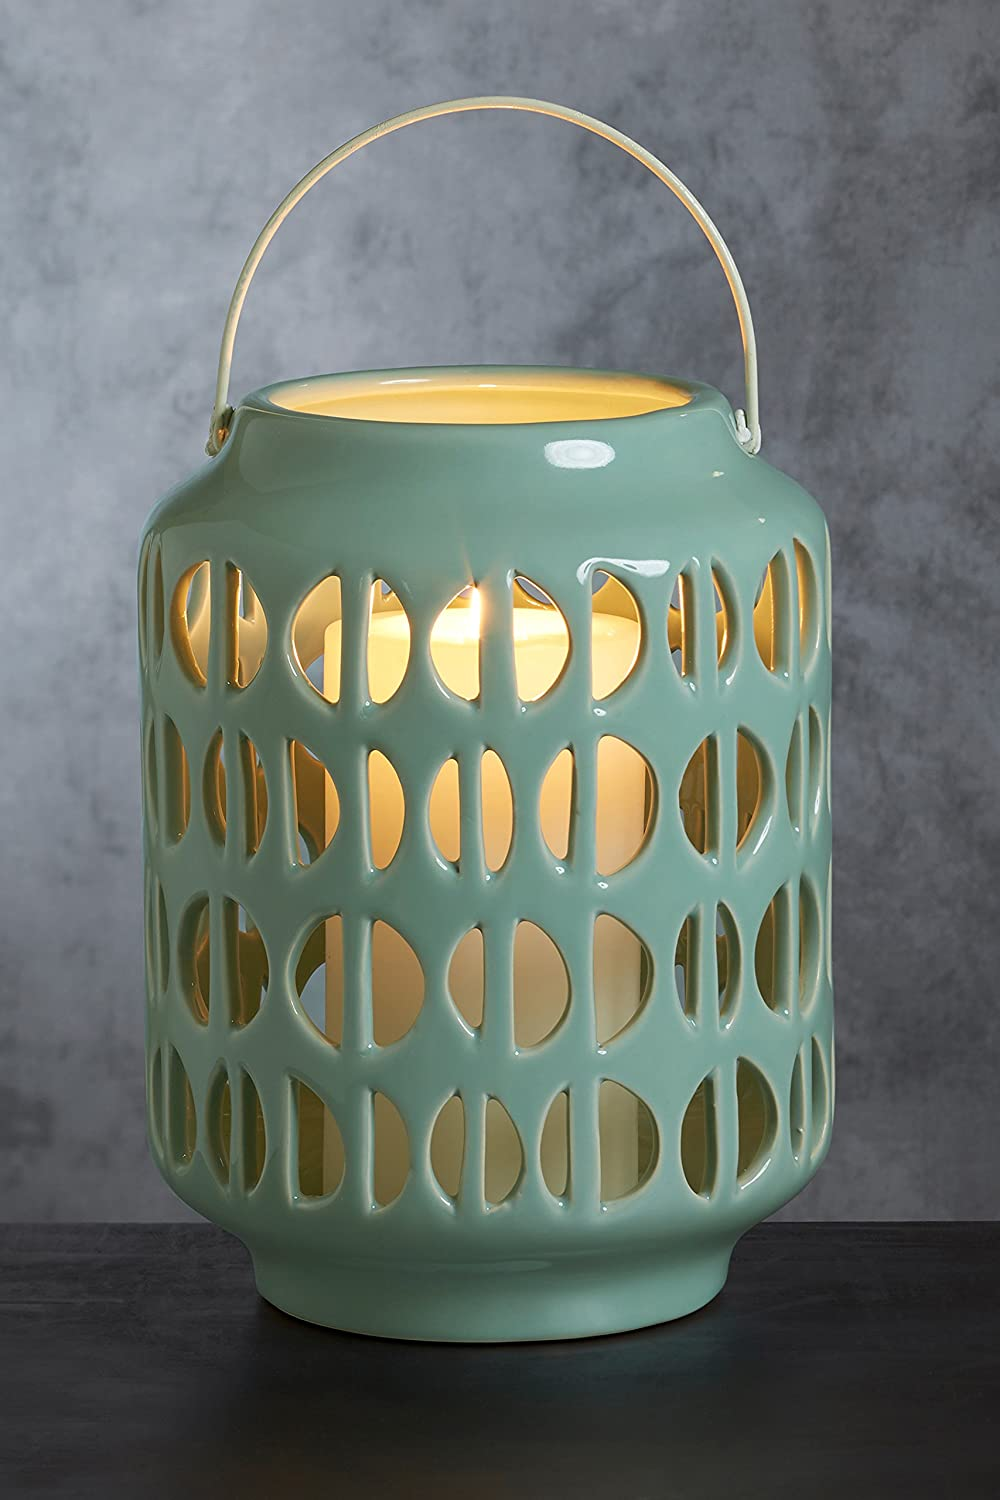 Next Ceramic Lantern With Openings One Size Green Amazon Co Uk Kitchen Home